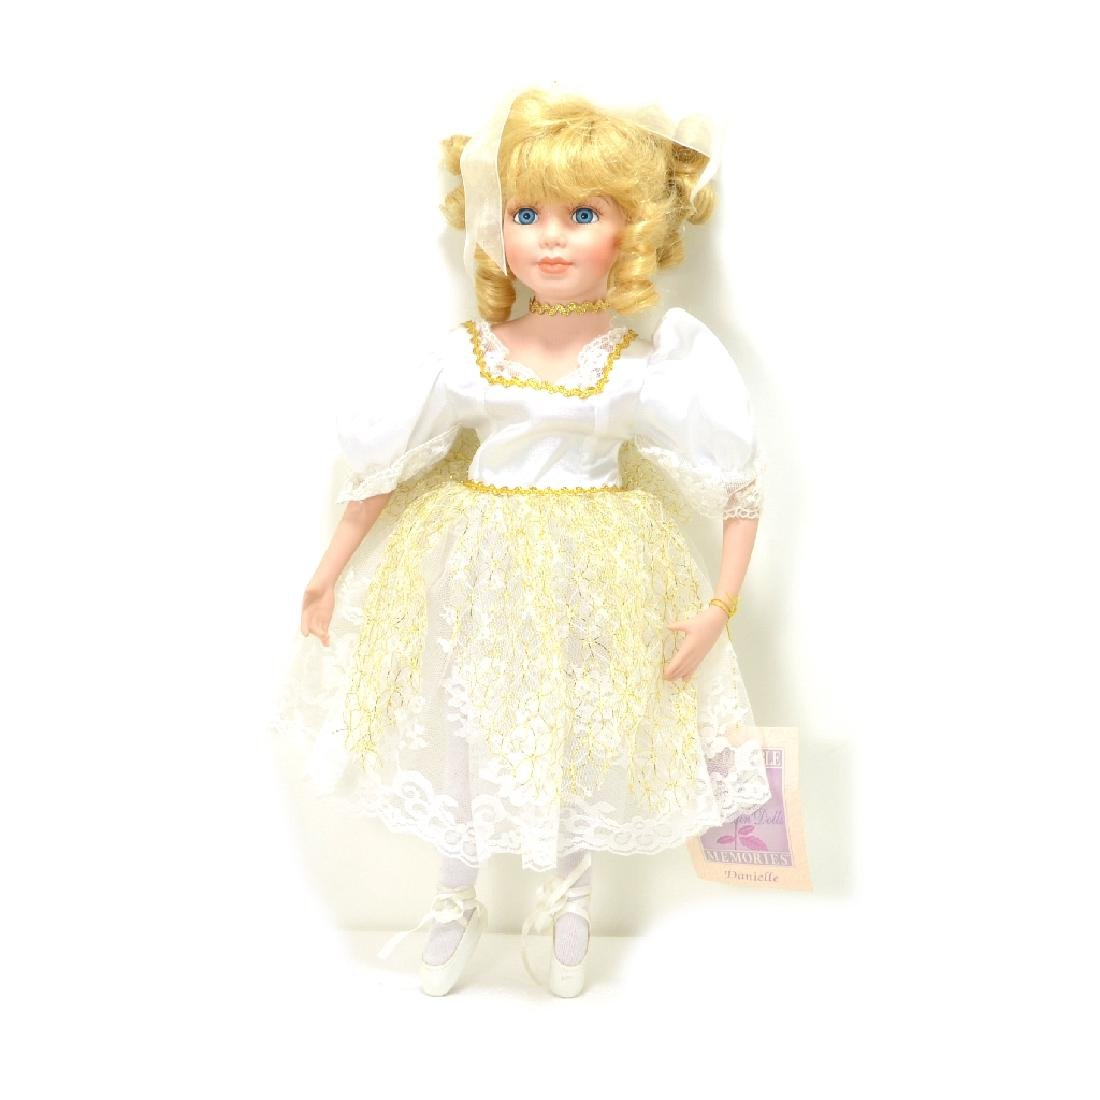 Rare Exquisite Porcelain Doll 16 Inches Tall